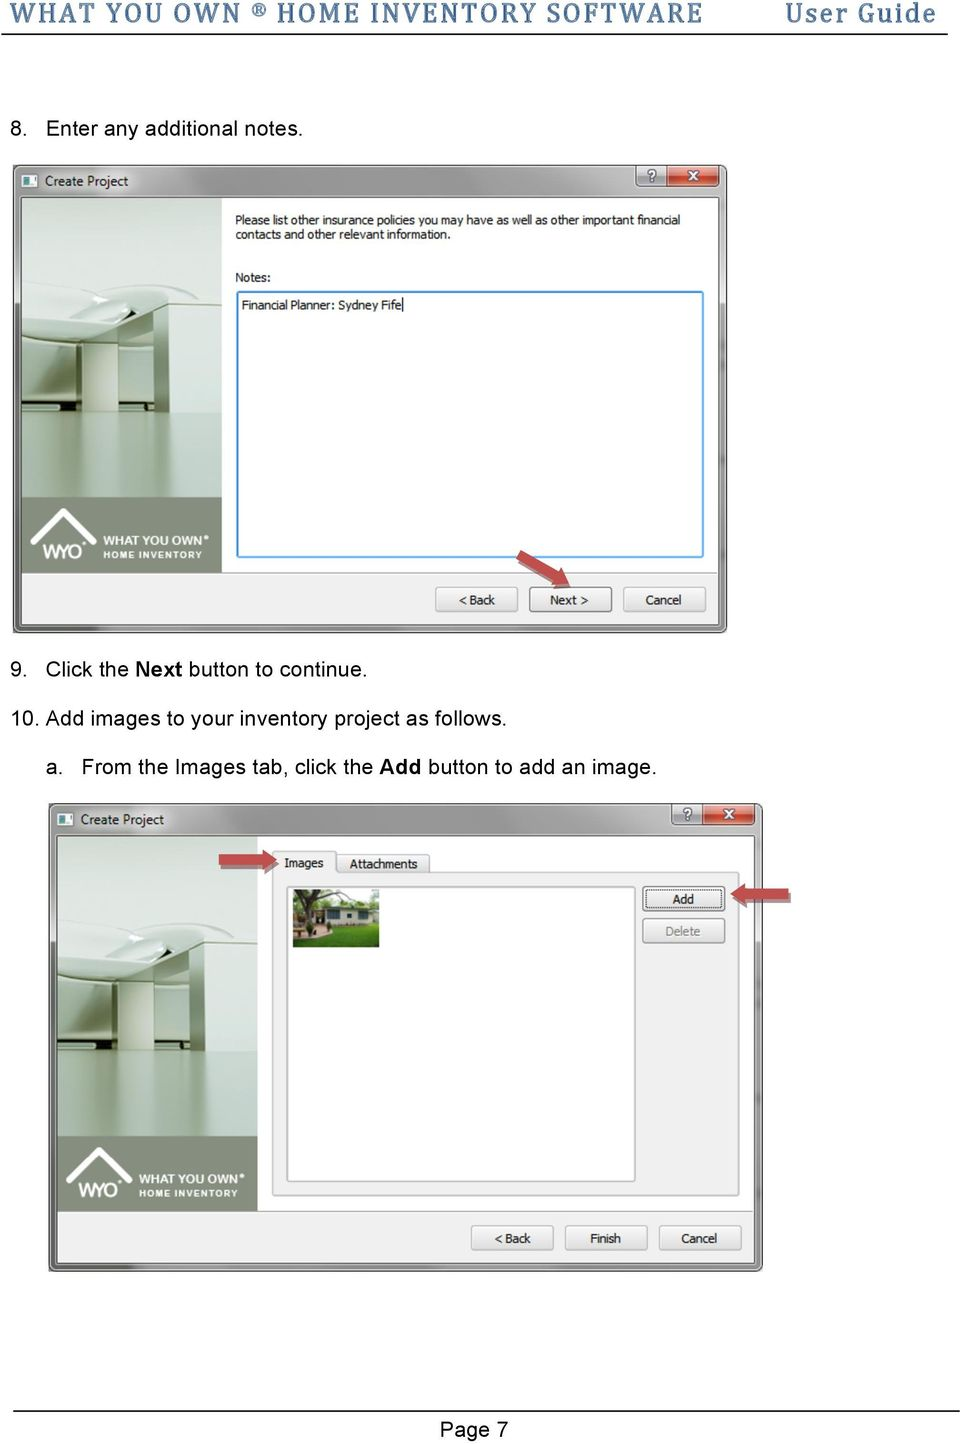 Add images to your inventory project as follows.